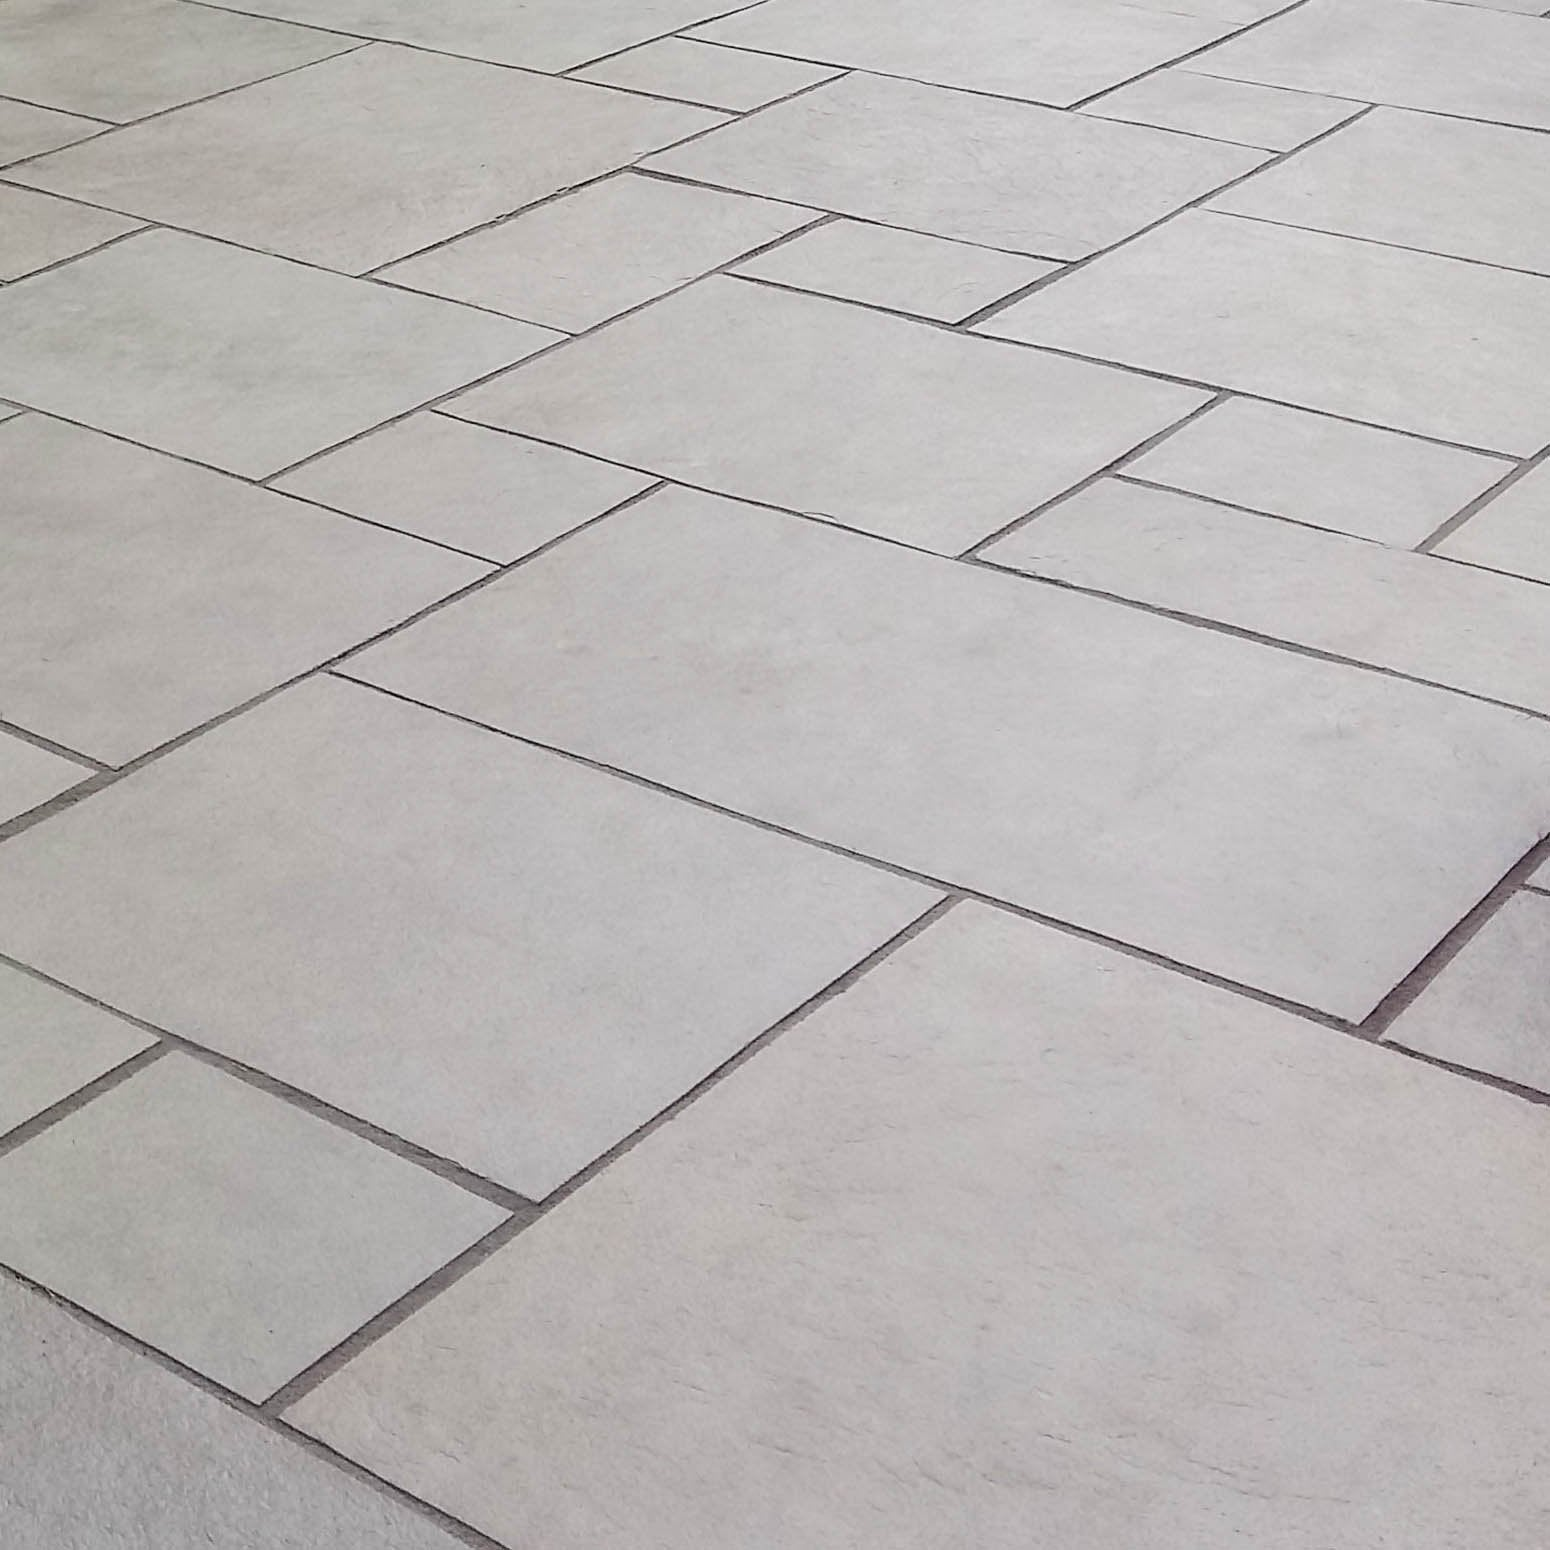 Dove Grey Limestone Paving Patio Packs, Sawn Edge 22 Cal. £21.89/m2